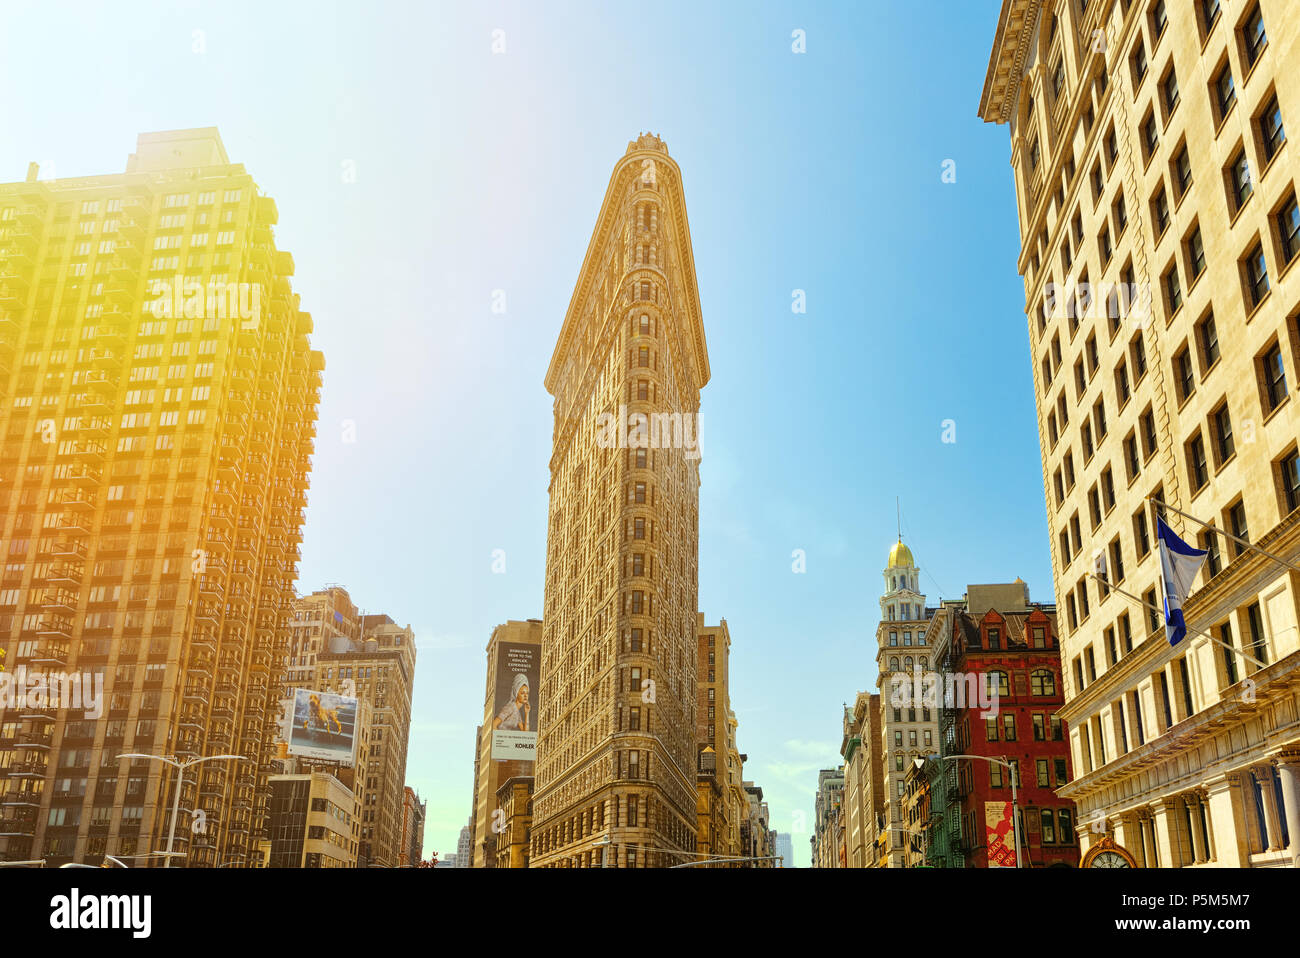 New York, USA- August 14, 2017 : Flatiron Building on 5th Avenue near Madison Square Park. Urban views of New York. Street, people and tourists on it. - Stock Image